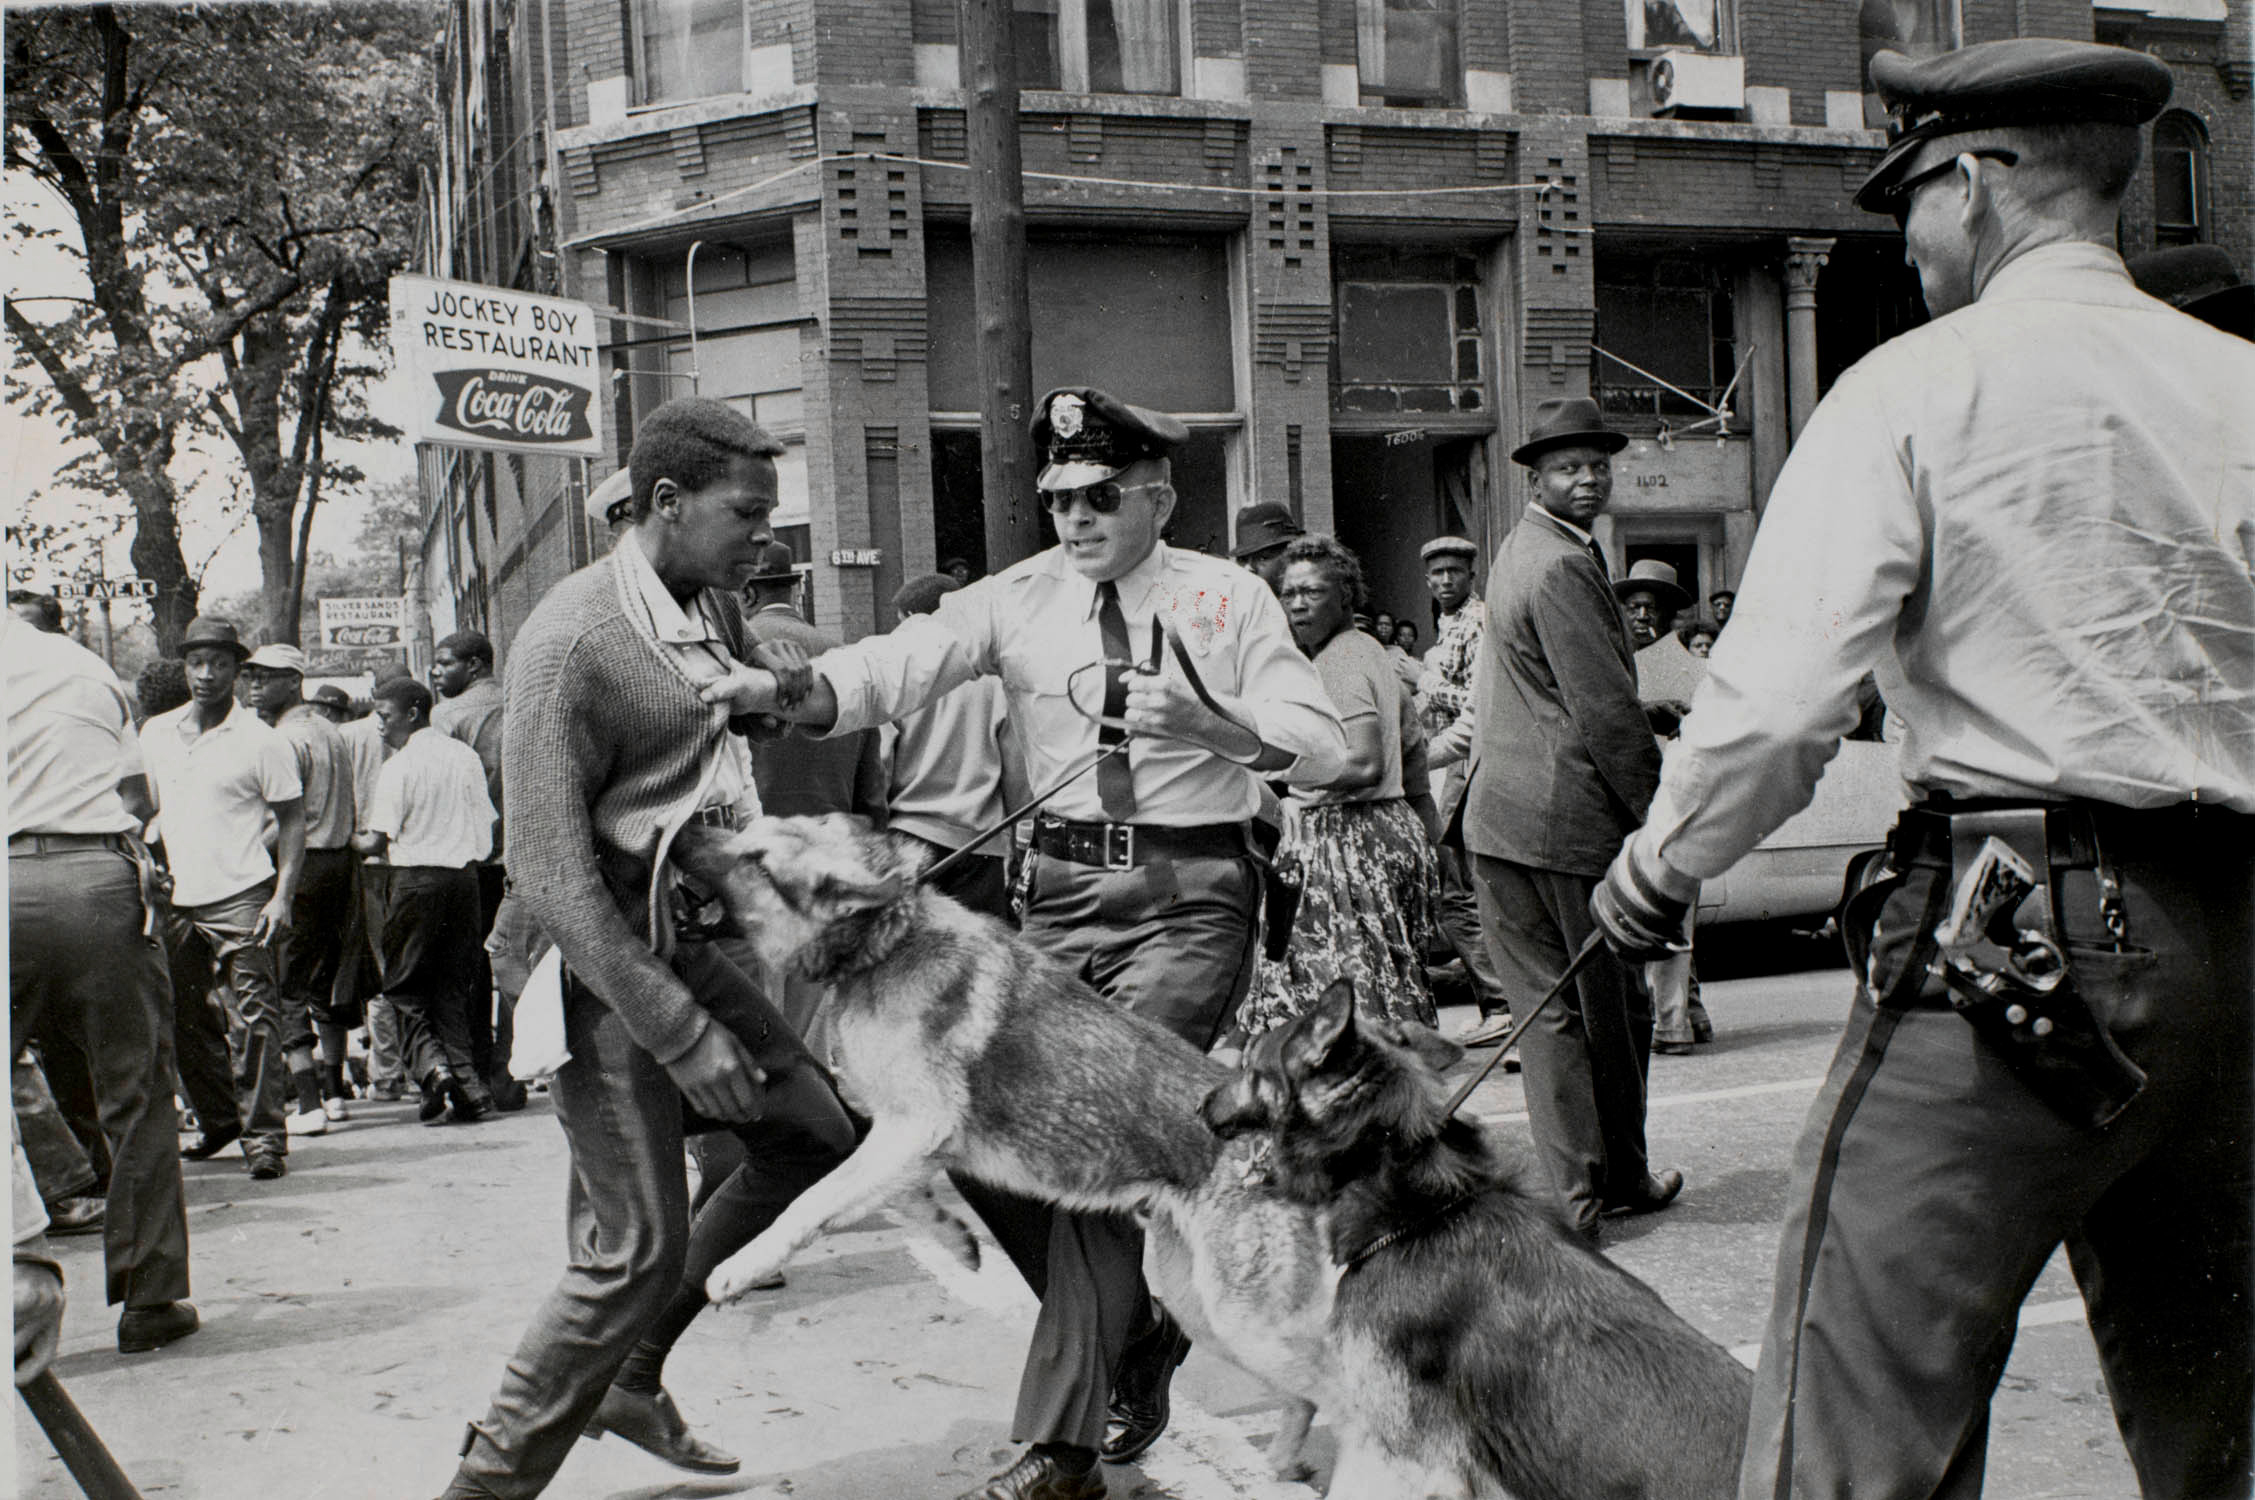 Bill Hudson (American, 1932–2010), Police Dog Attack, Birmingham, Alabama, 1963, gelatin silver print. High Museum of Art, Atlanta, purchase with funds from Sandra Anderson Baccus in loving memory of Lloyd Tevis Baccus, M.D., 2007.100.